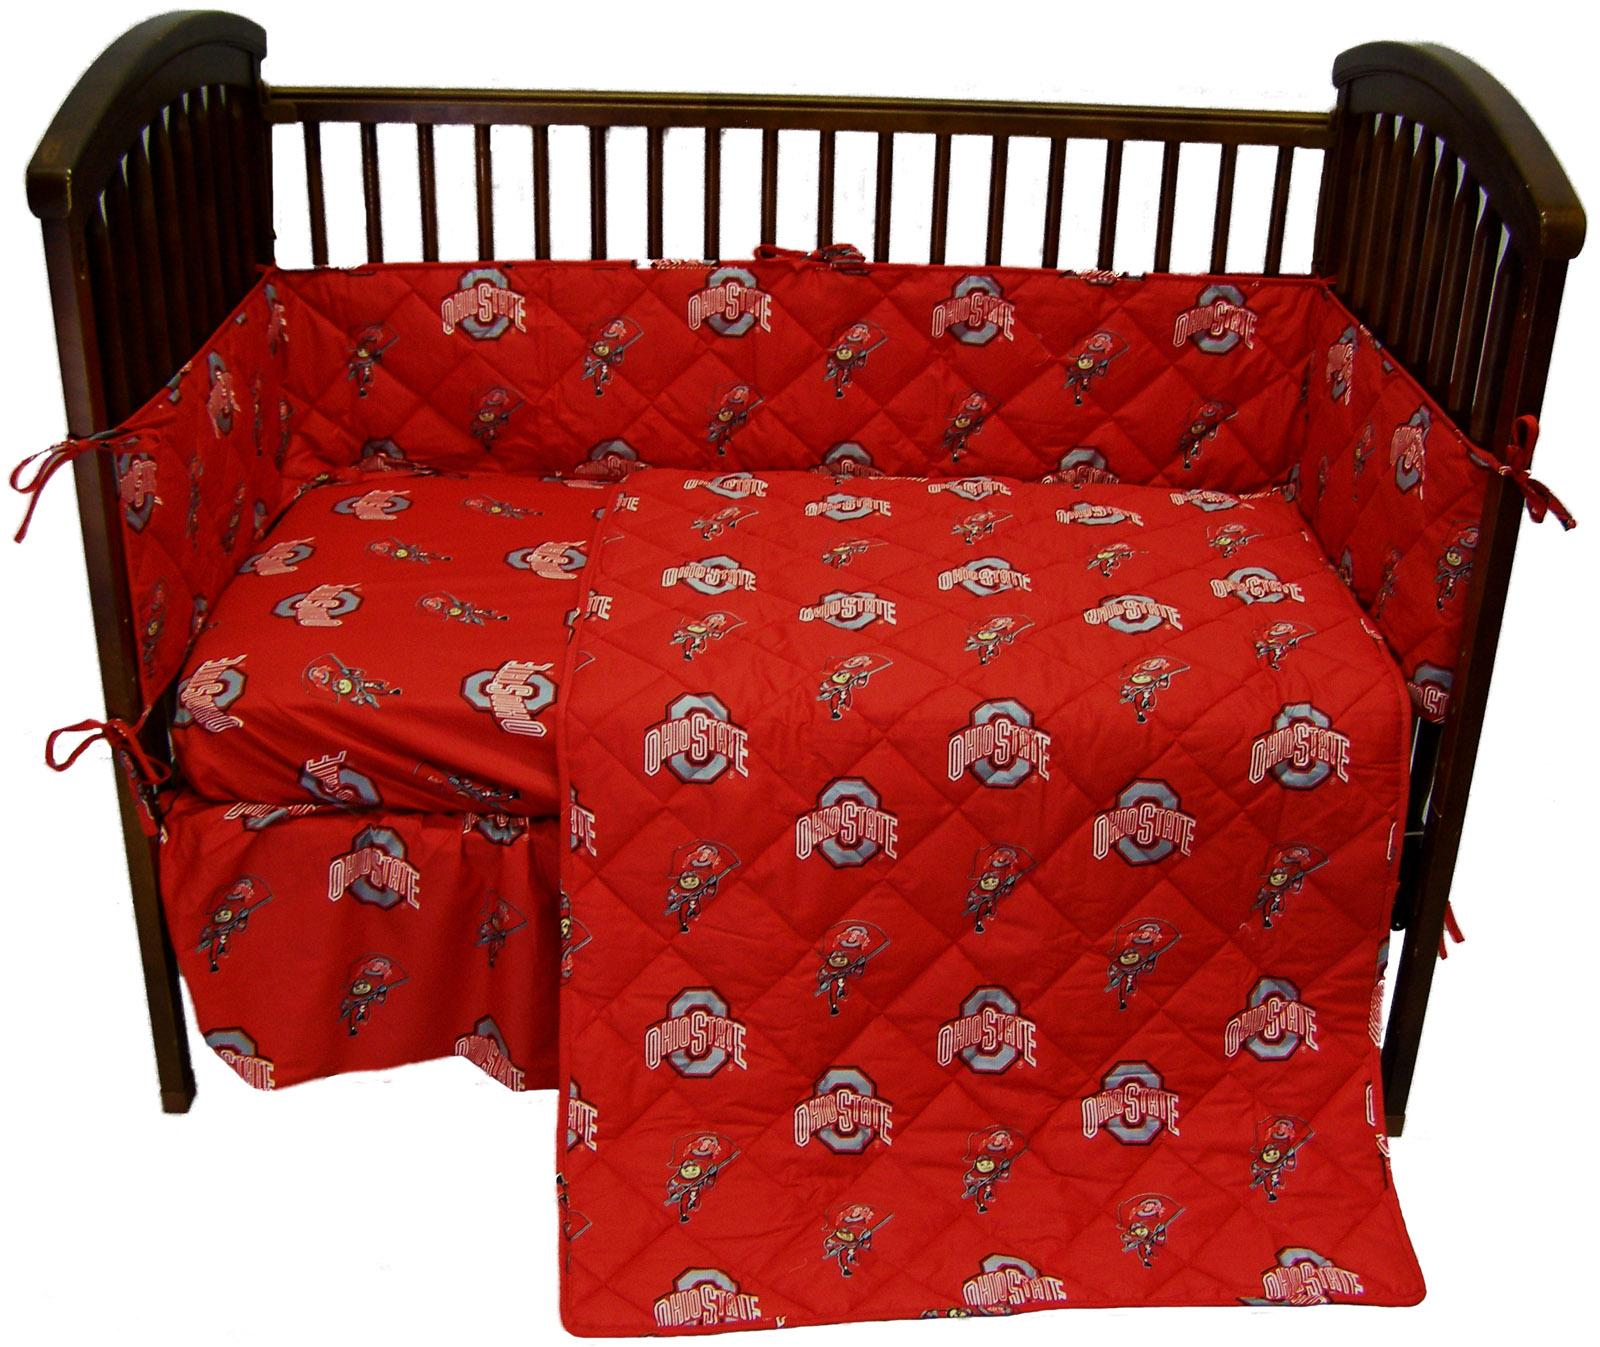 Ohio State Buckeyes Crib Bedding Set